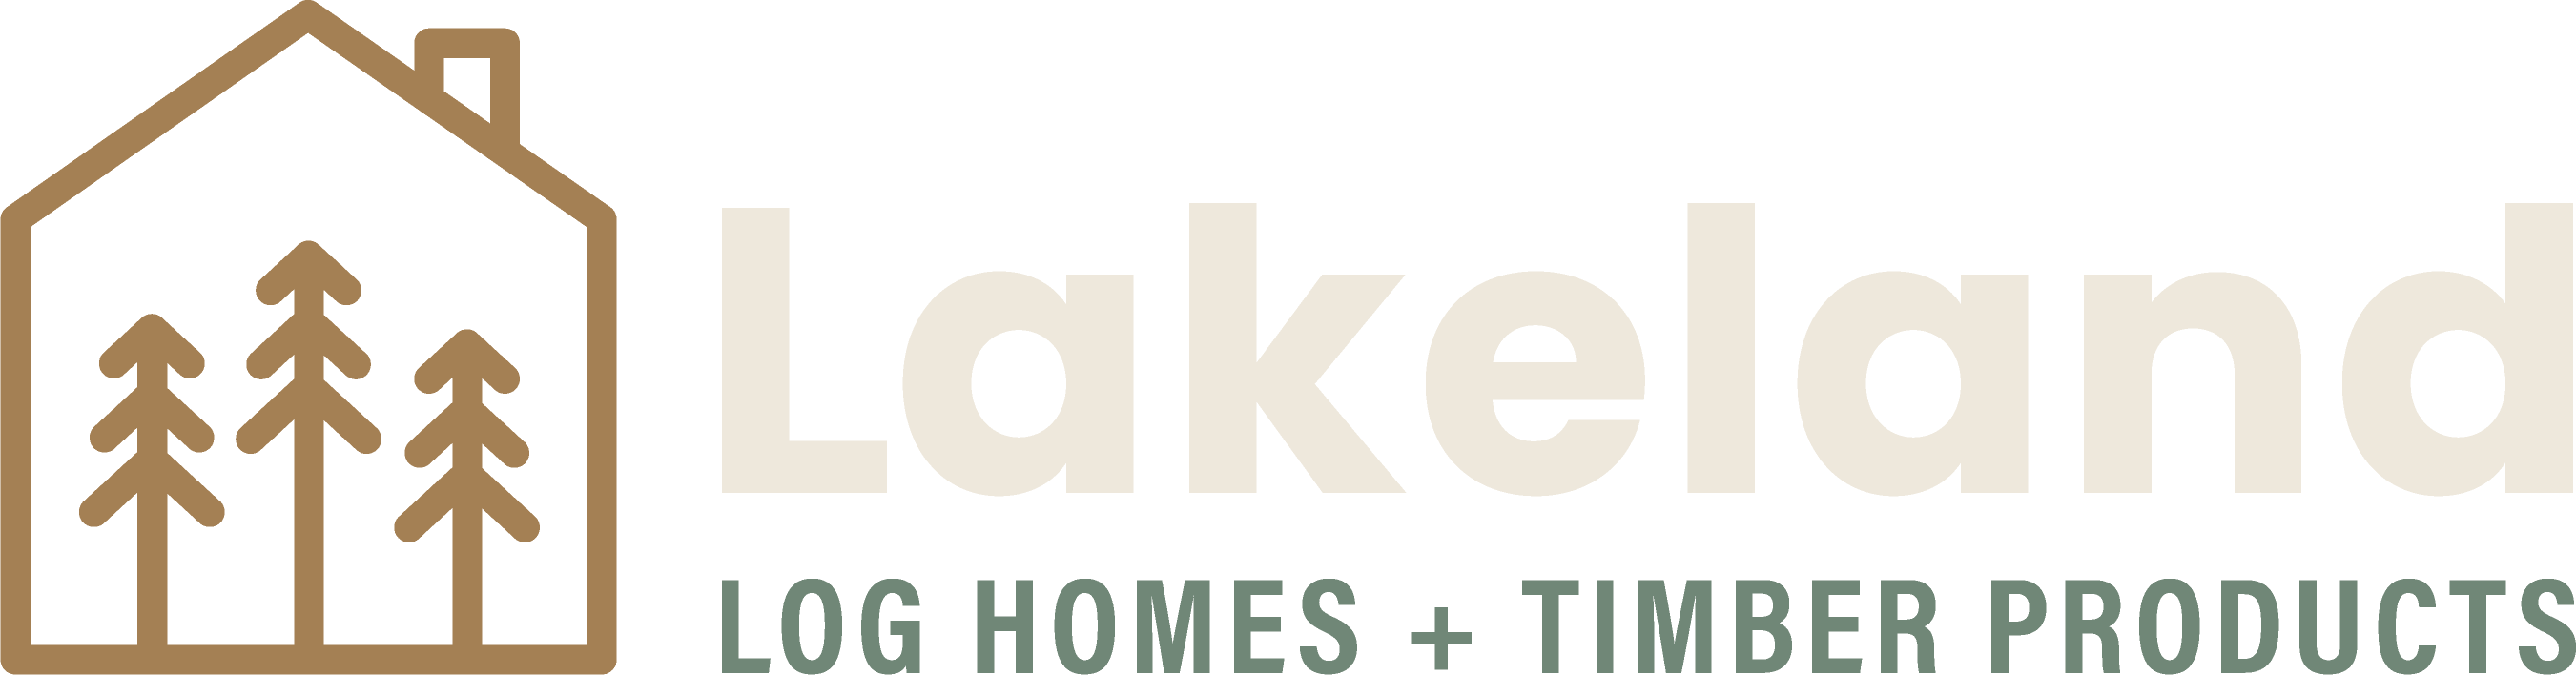 Lakeland Log Homes + Timber Products